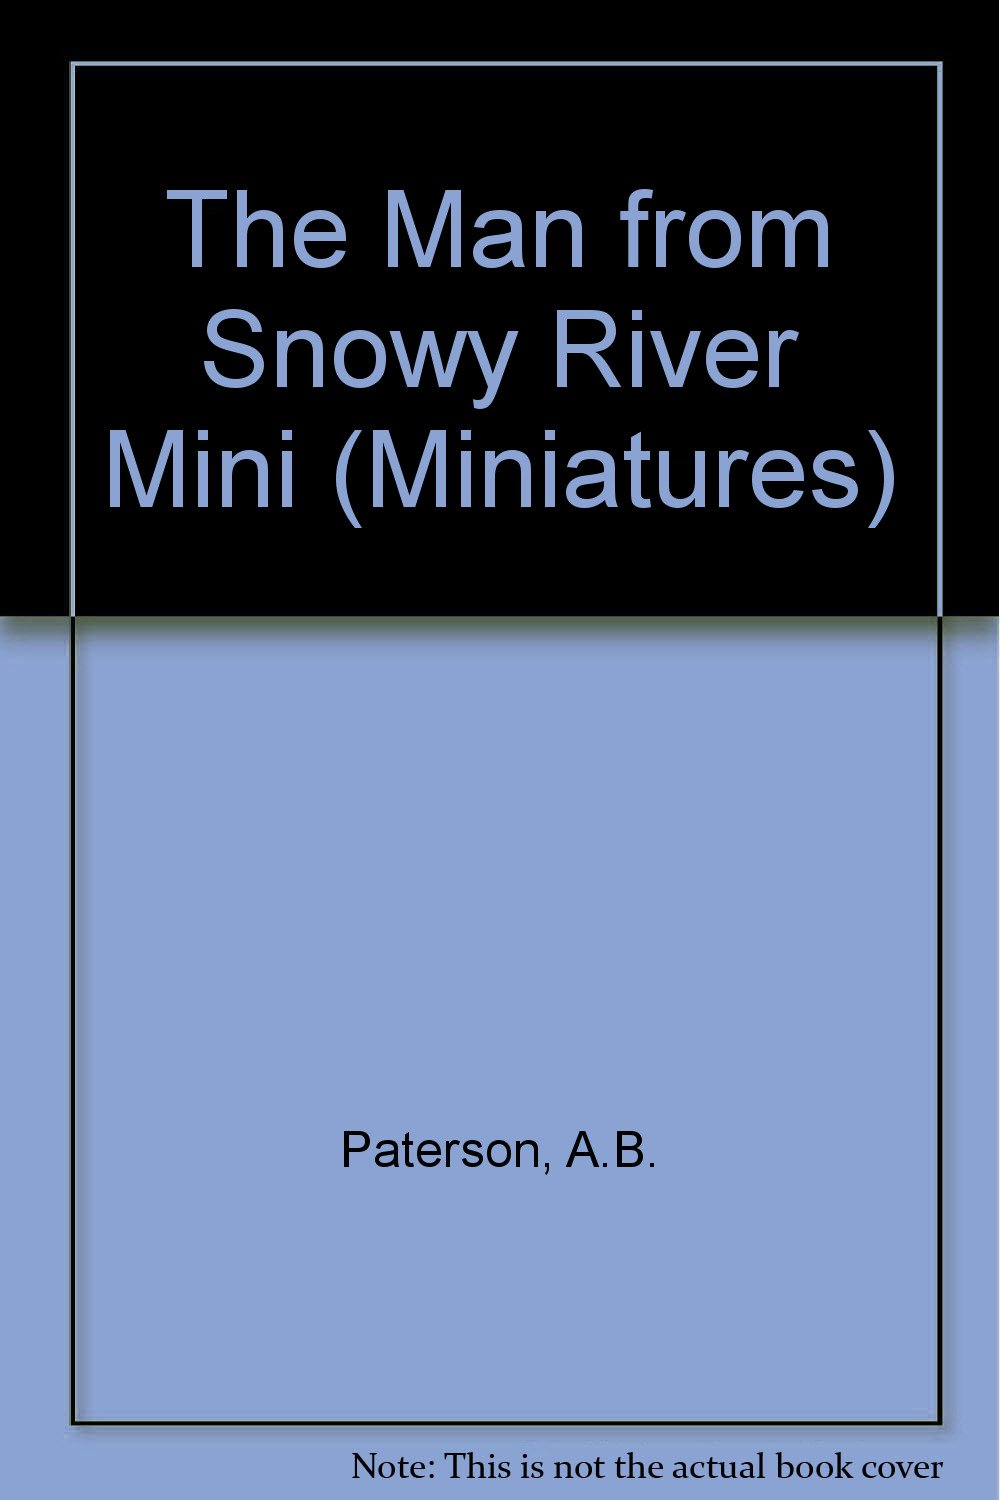 The Man from Snowy River Mini (Miniatures)